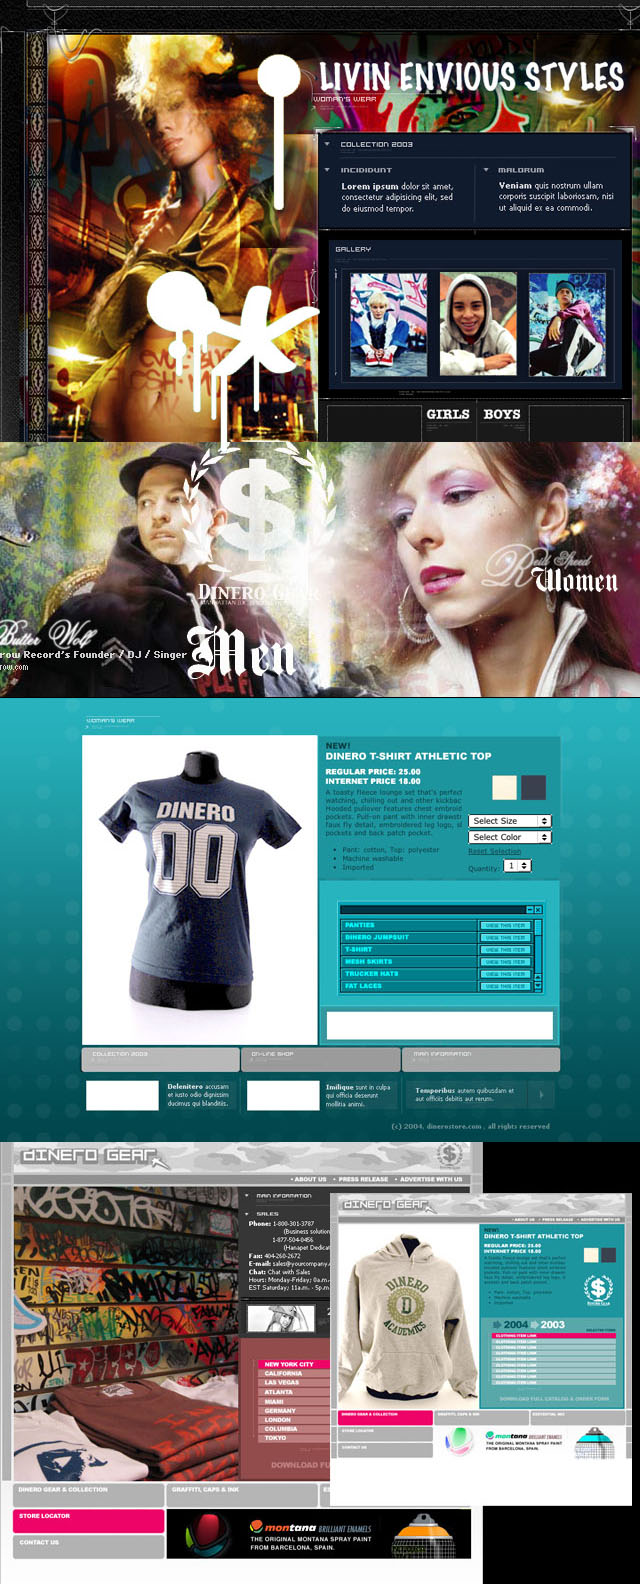 Dinero Store – Lower East Side Hip Hop store- Brand & Web Design